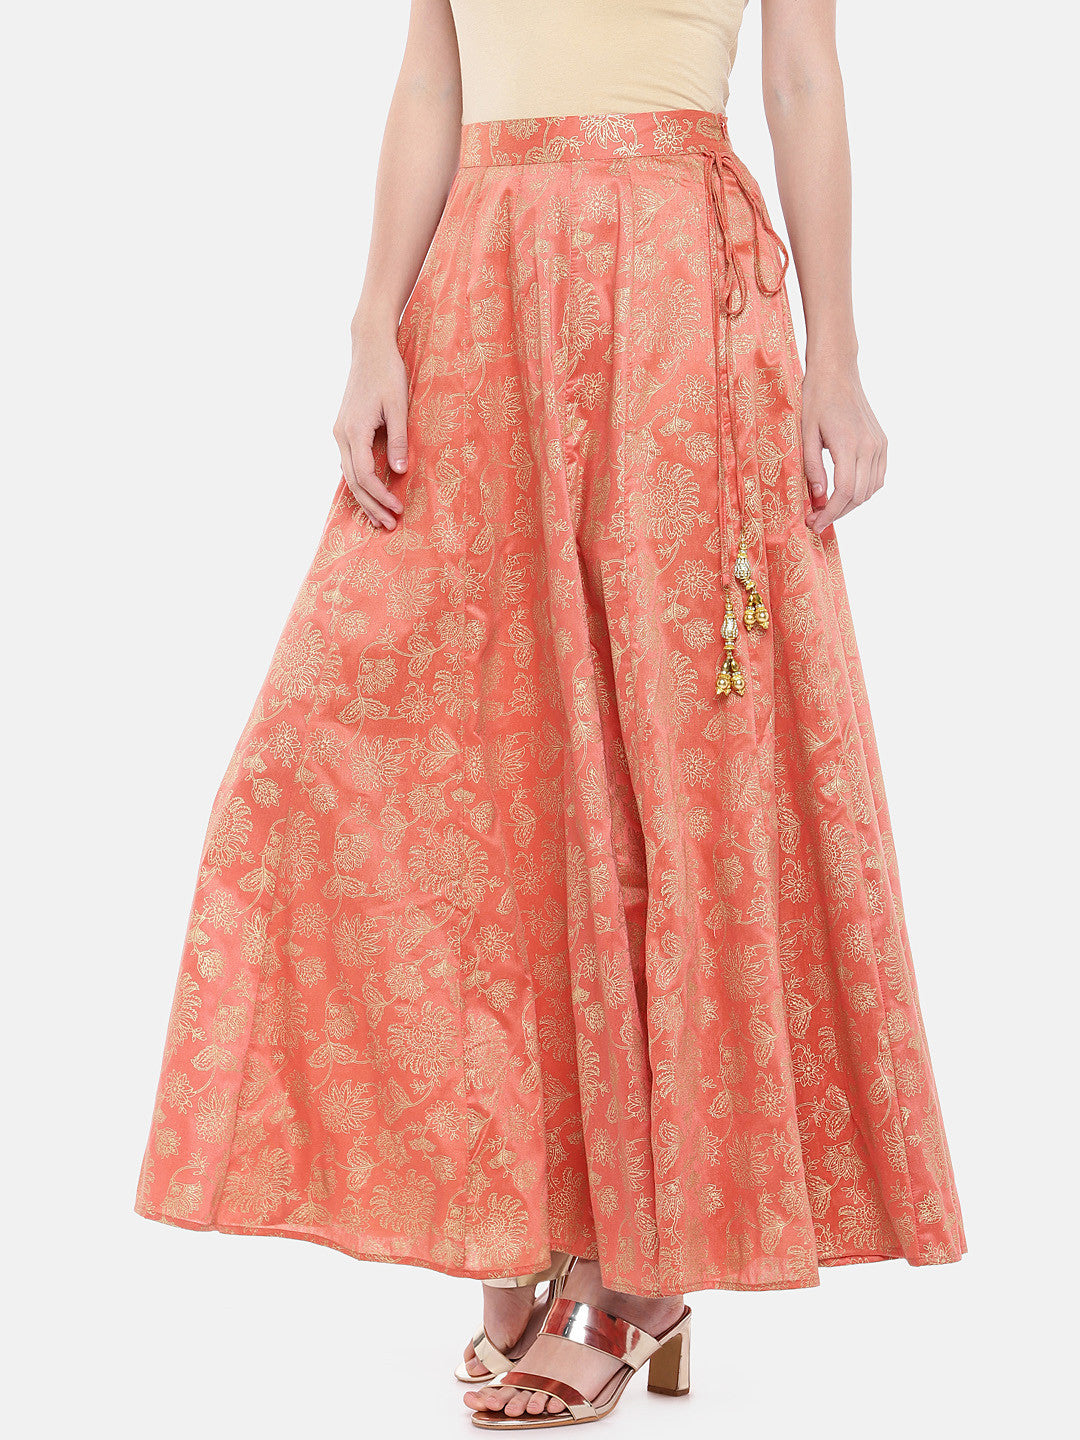 Orange Printed Flared Skirt-2